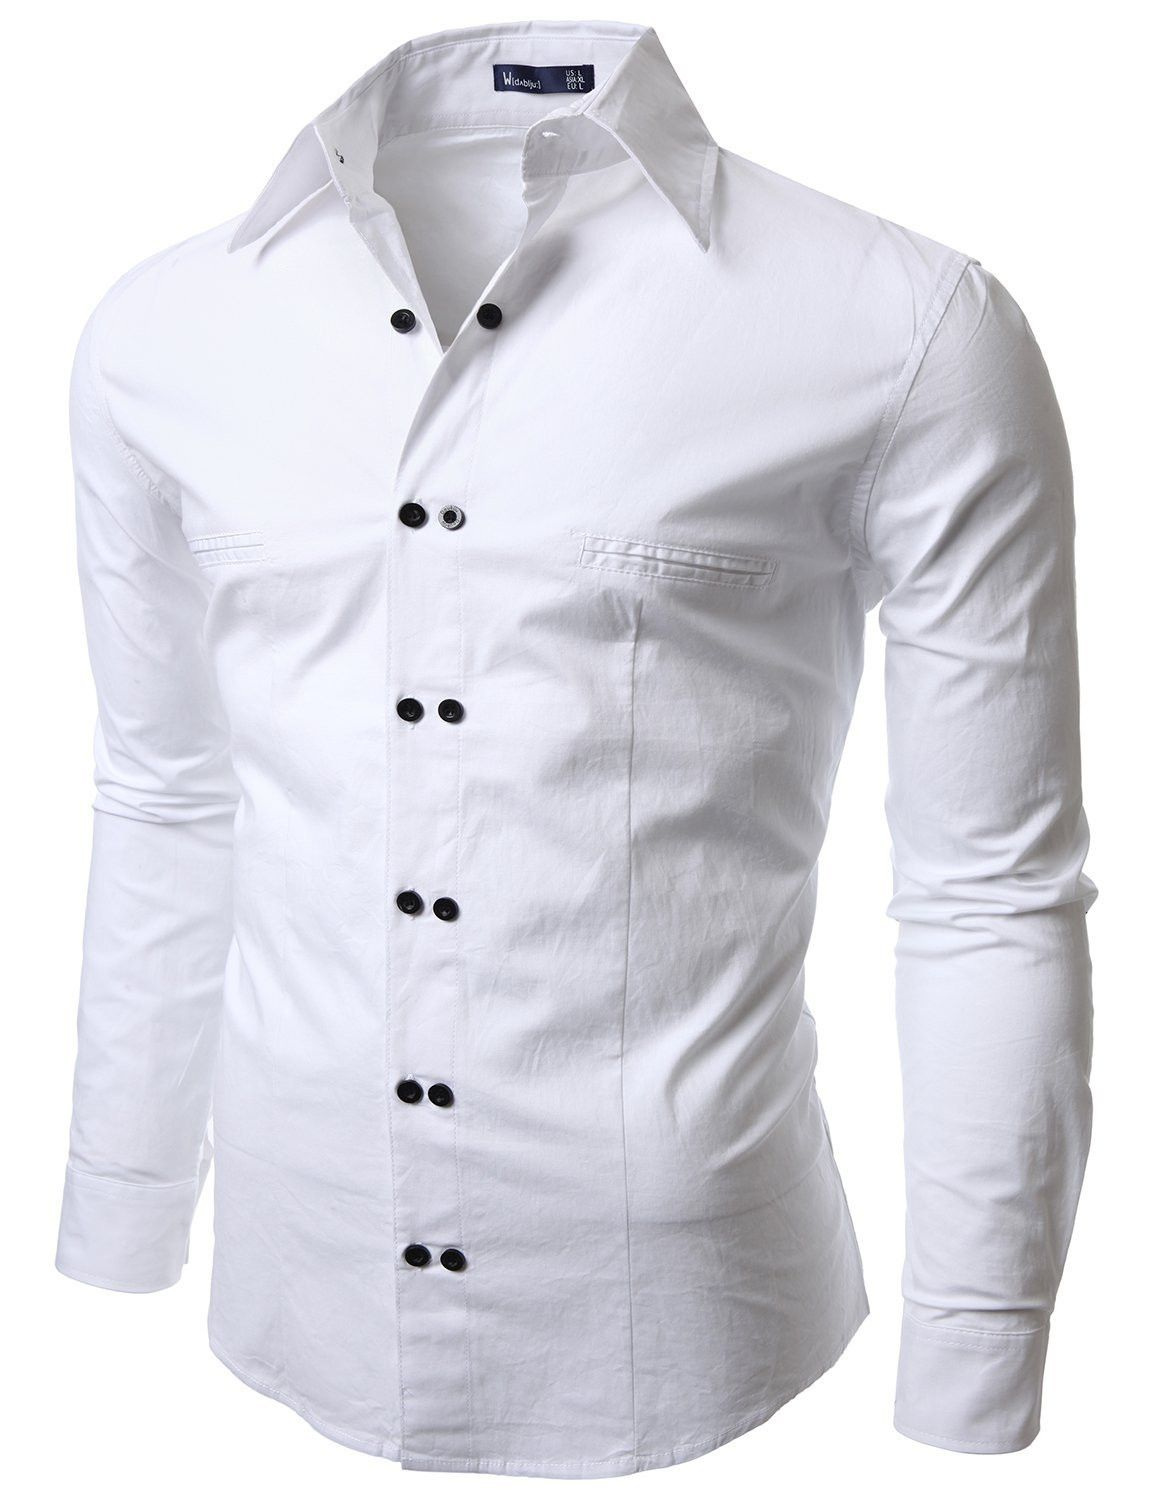 Doublju Mens Casual Long Sleeve Double Button Dress Shirt White